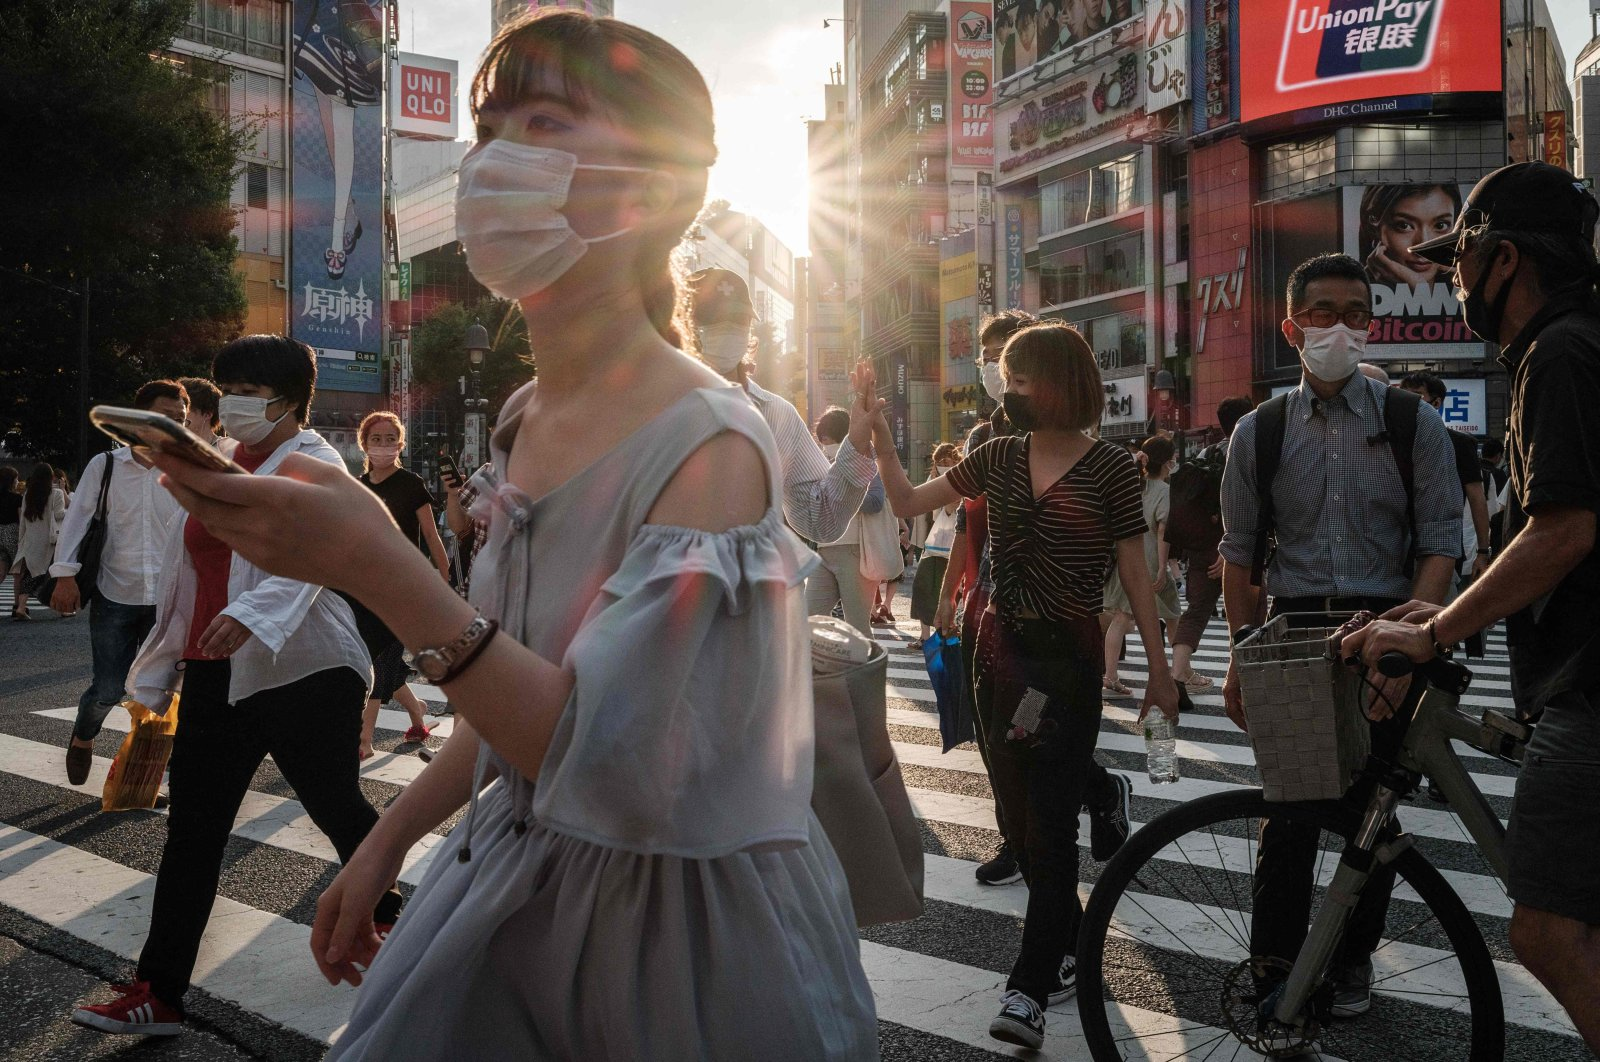 People wear face masks in Tokyo a day after the city reported a record 2,848 new daily COVID-19 cases, Tokyo, Japan, July 28, 2021. (AFP Photo)